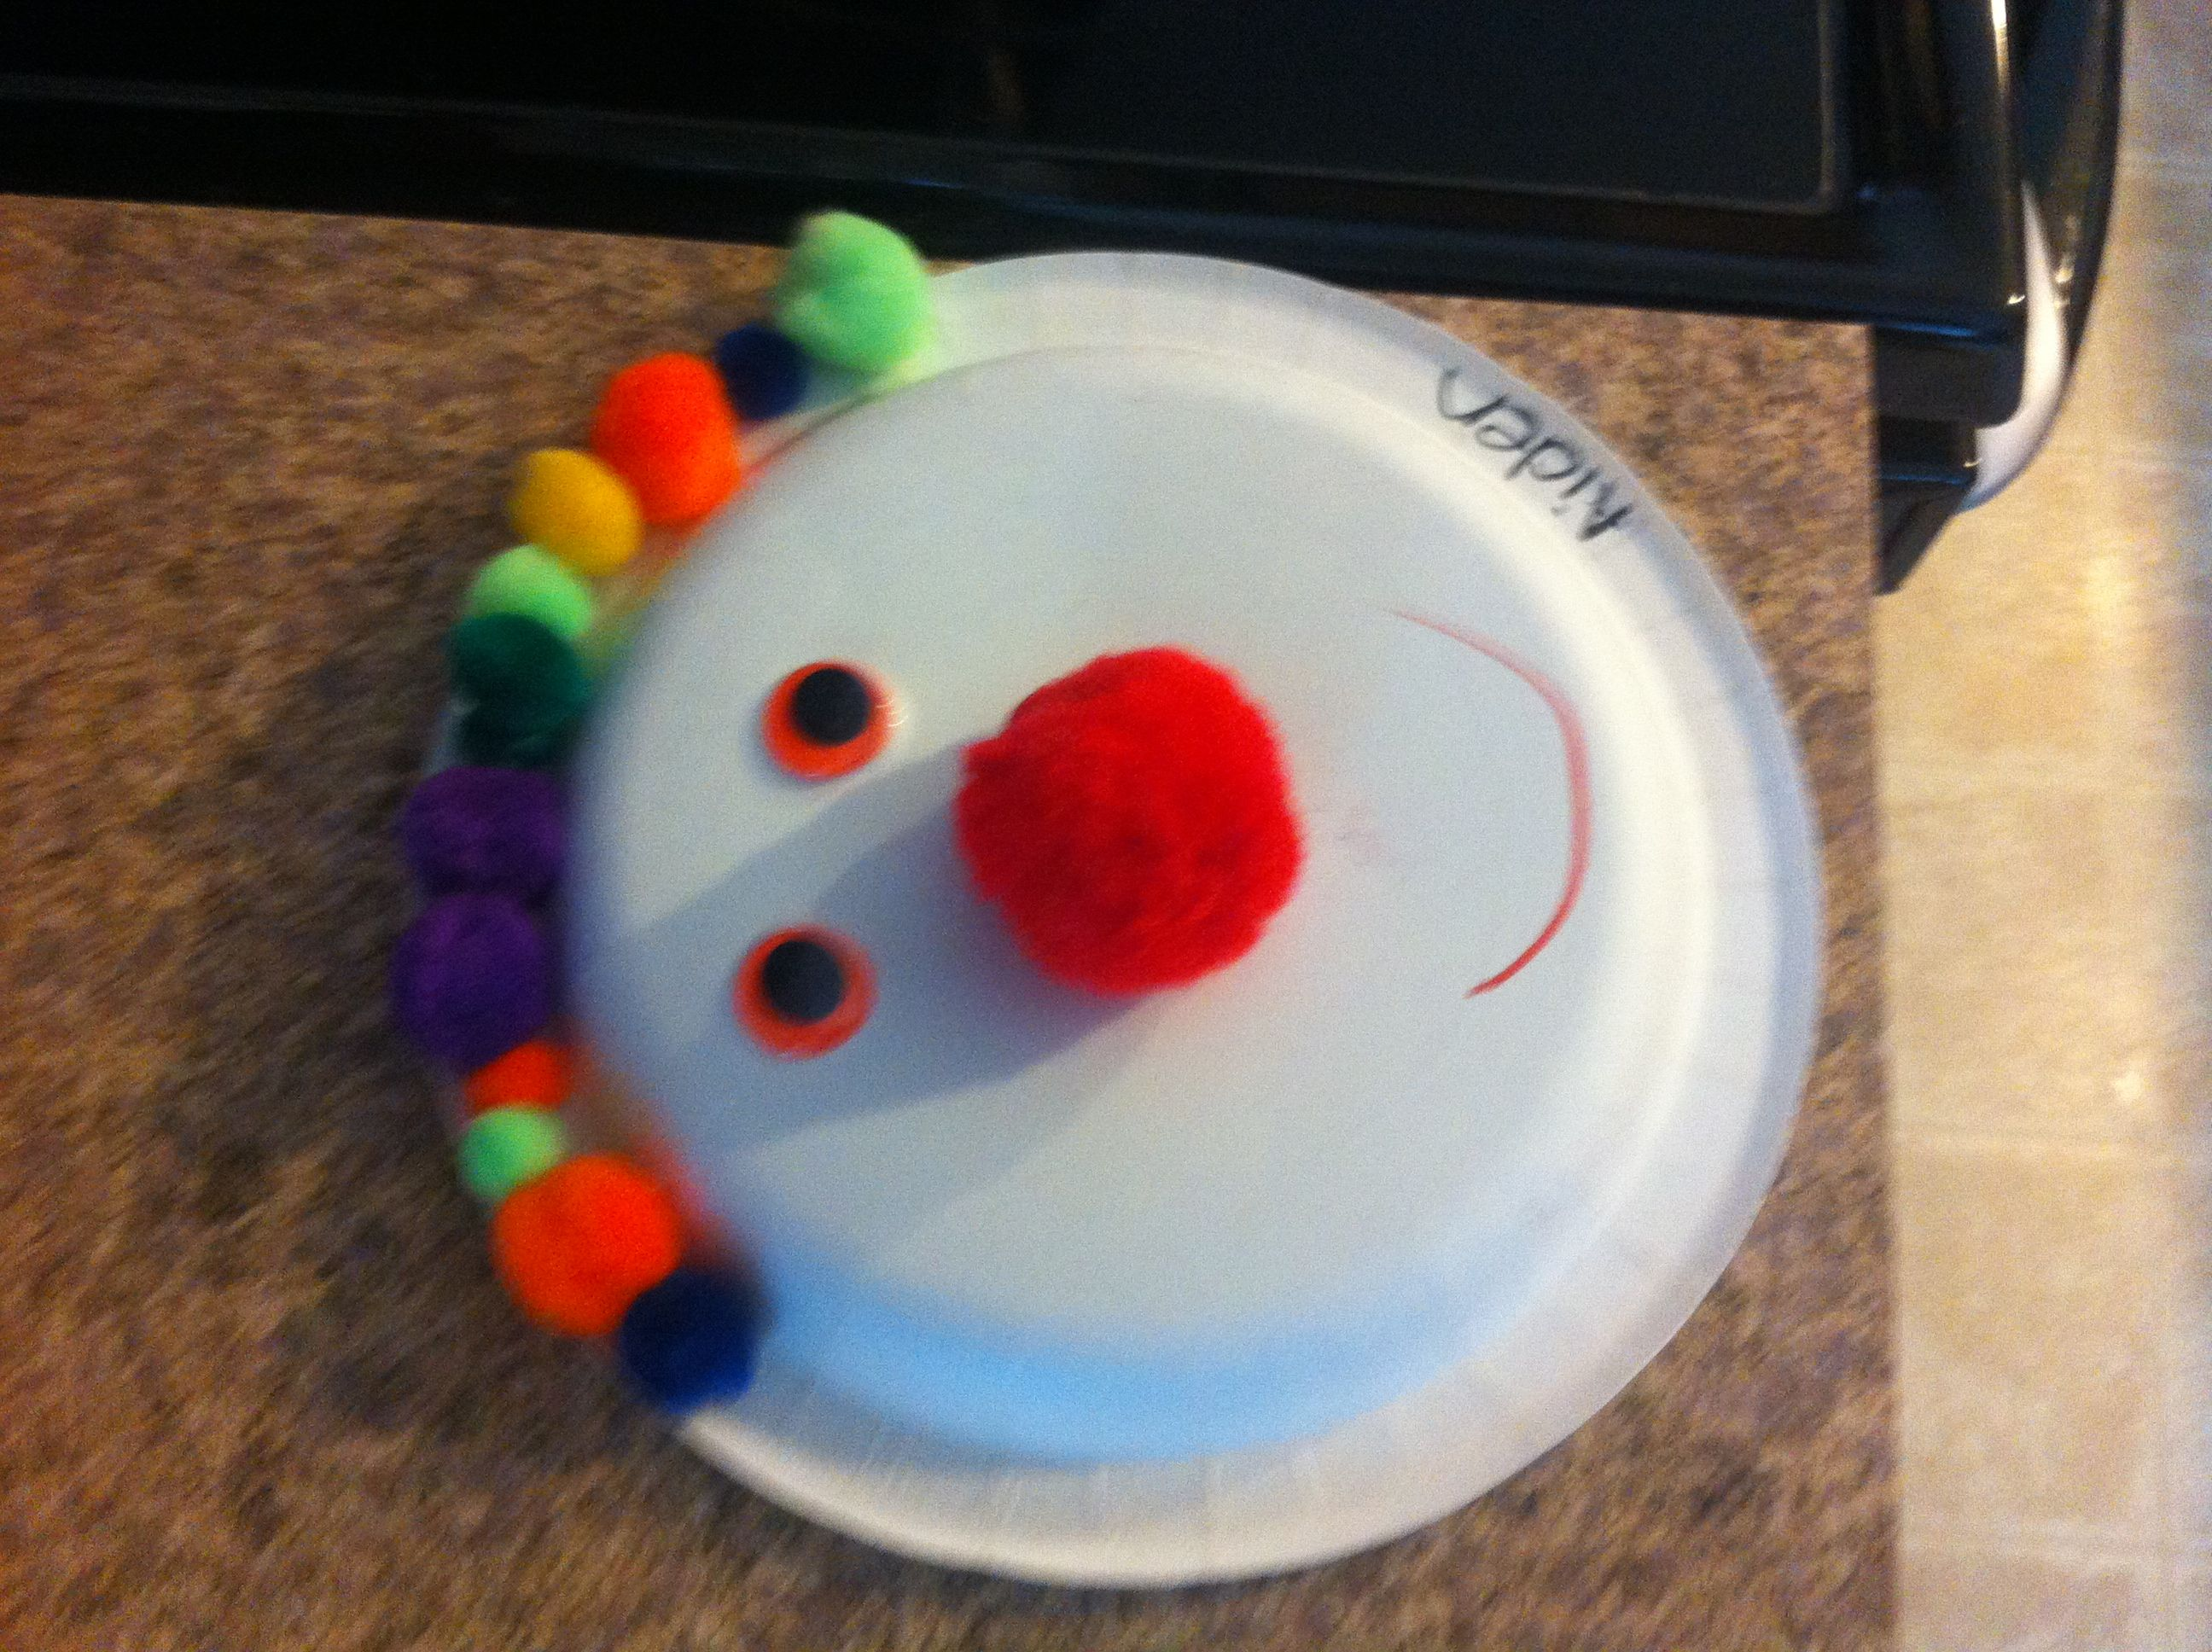 Circus week clown paper plate crafts with Pom Poms and google eyes ! & Circus week clown paper plate crafts with Pom Poms and google eyes ...